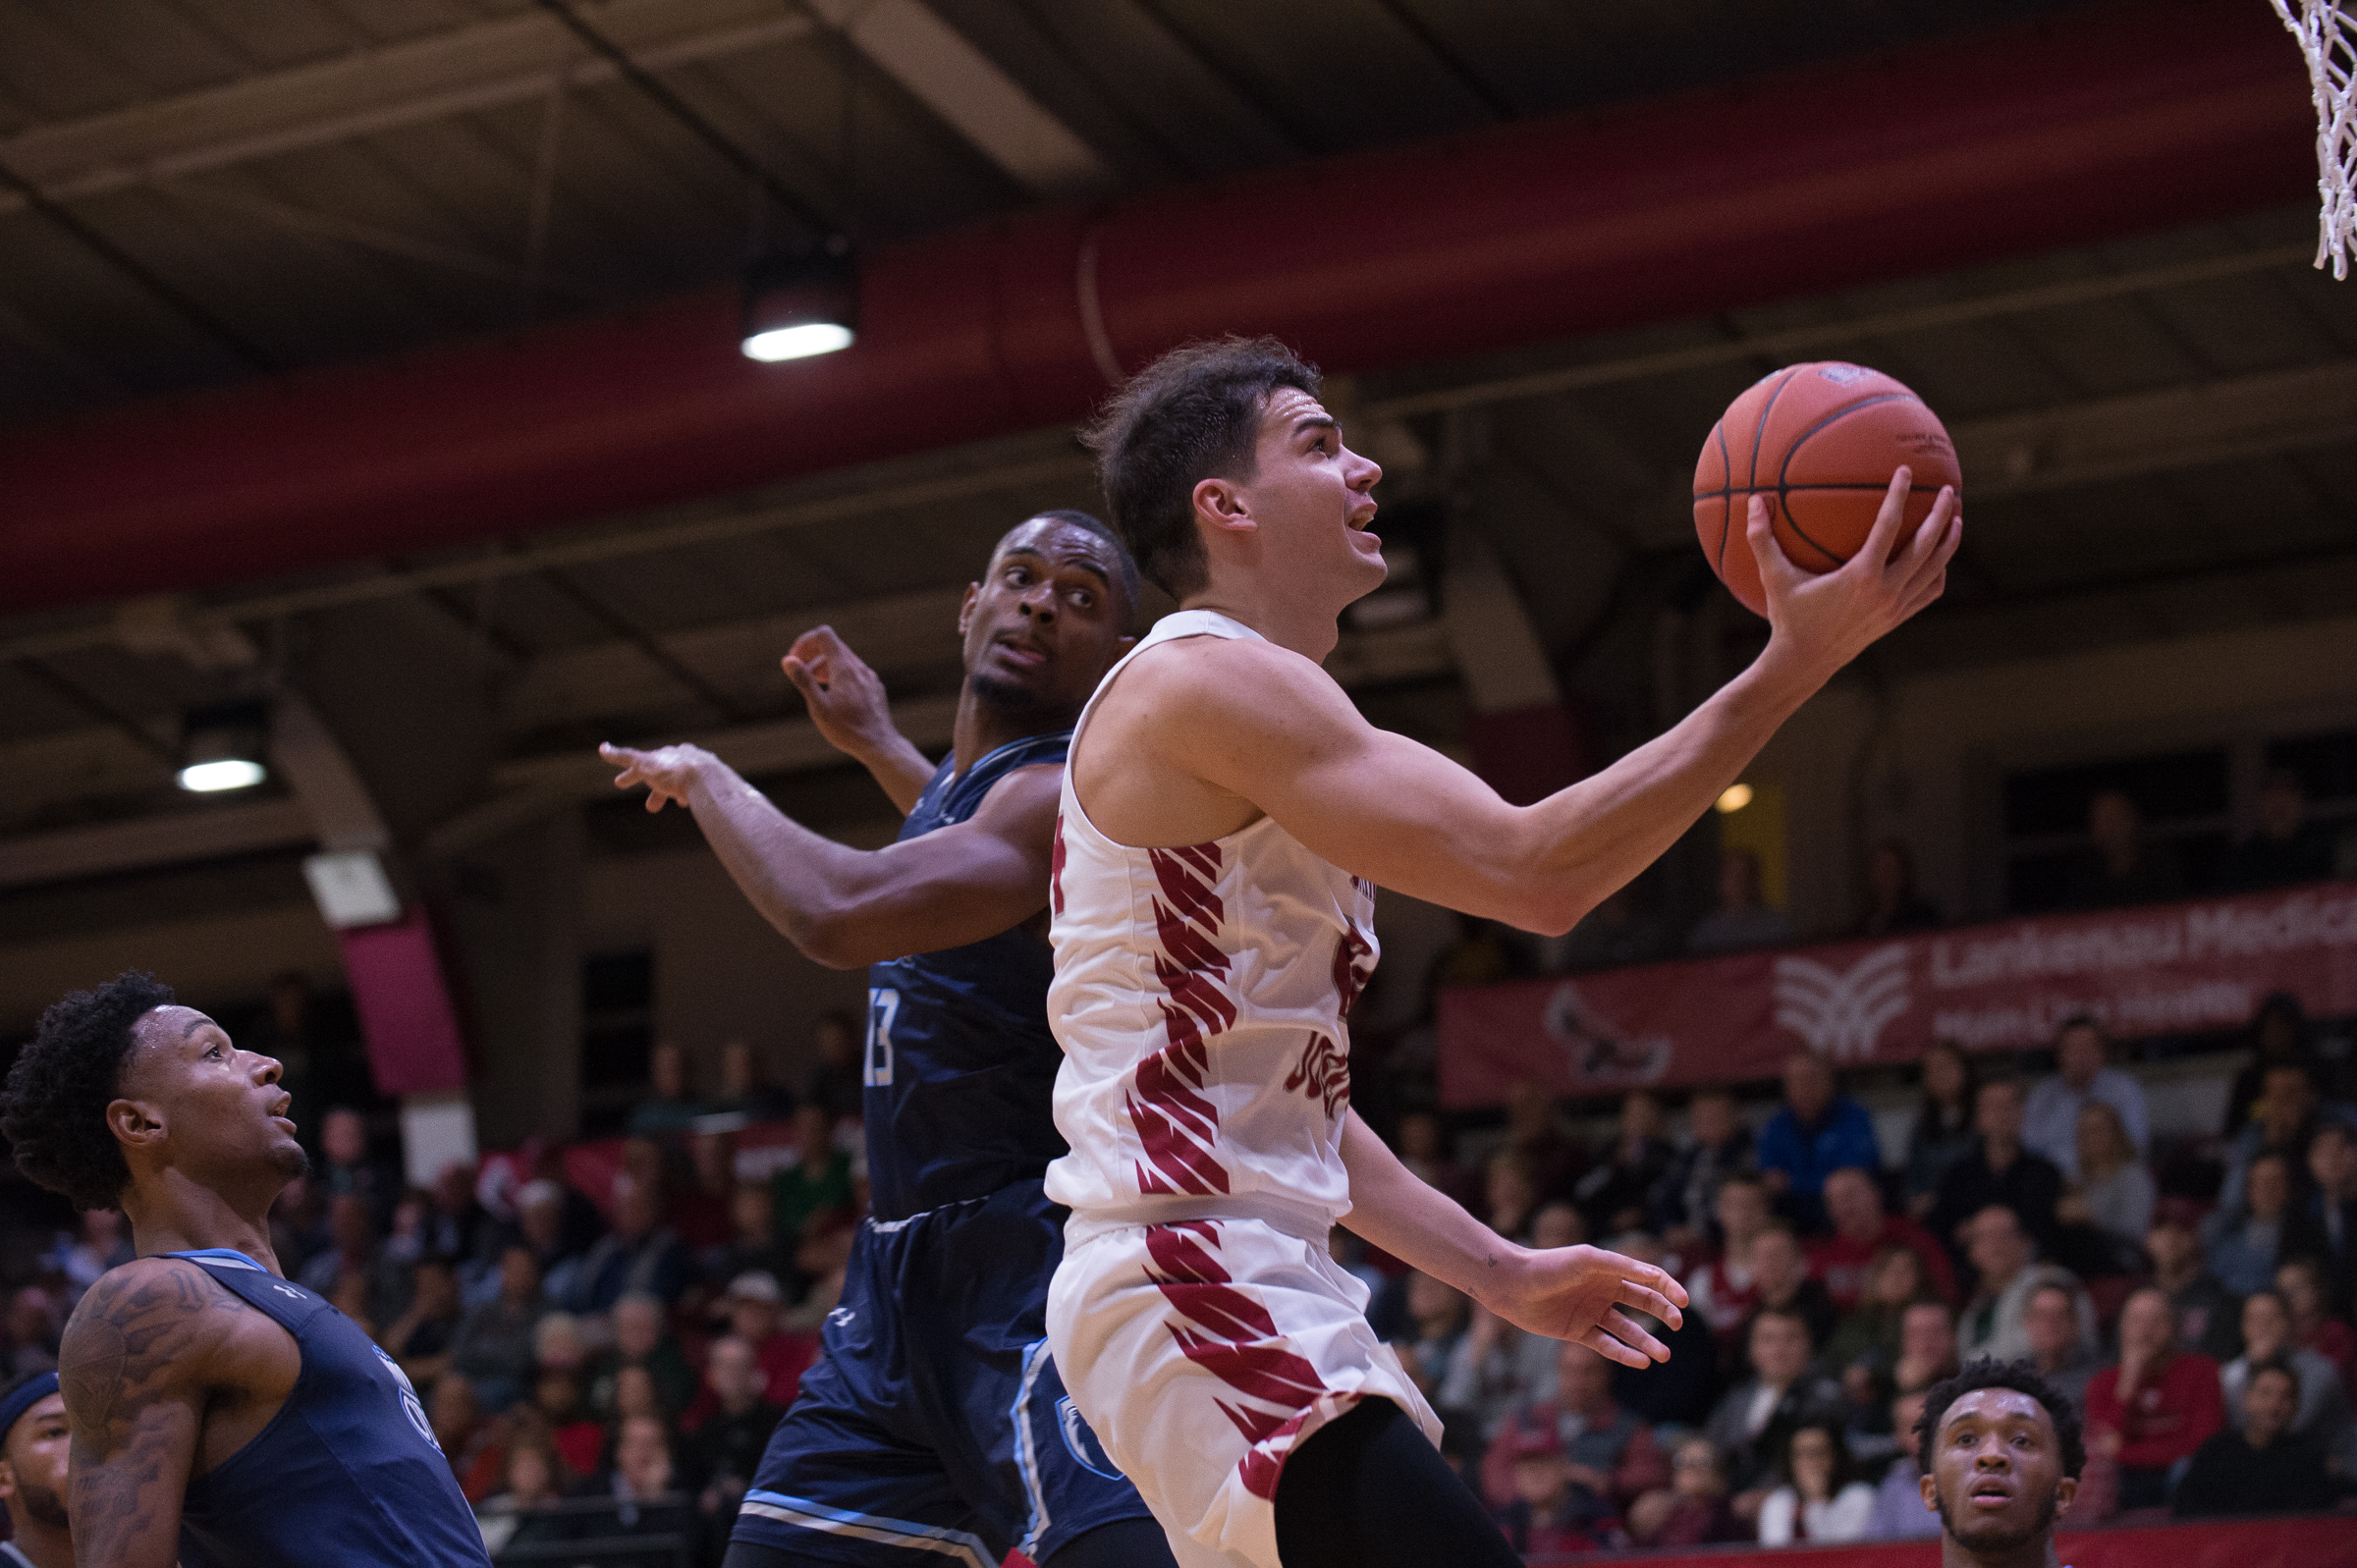 Pierfrancesco Oliva puts up a shot against Old Dominion.